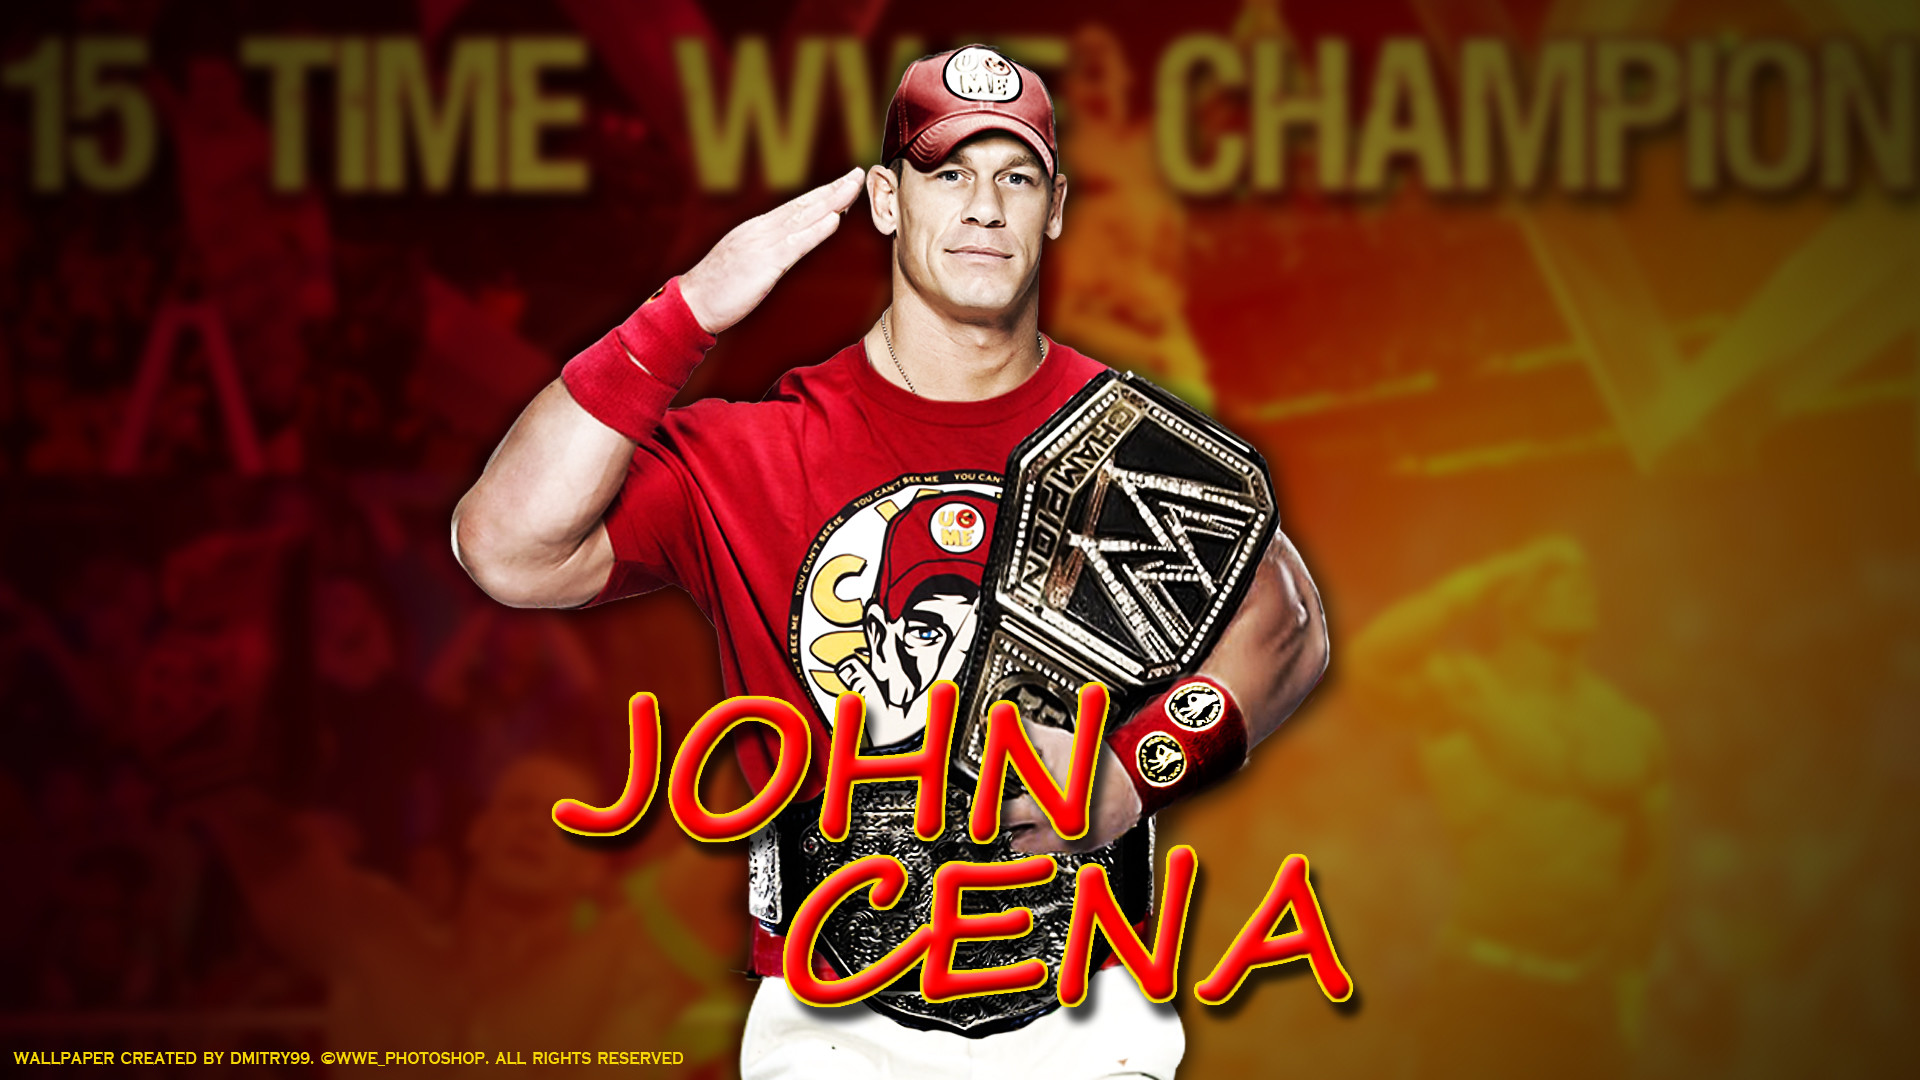 wwe john cena wallpaper 2018 hd (53+ images)